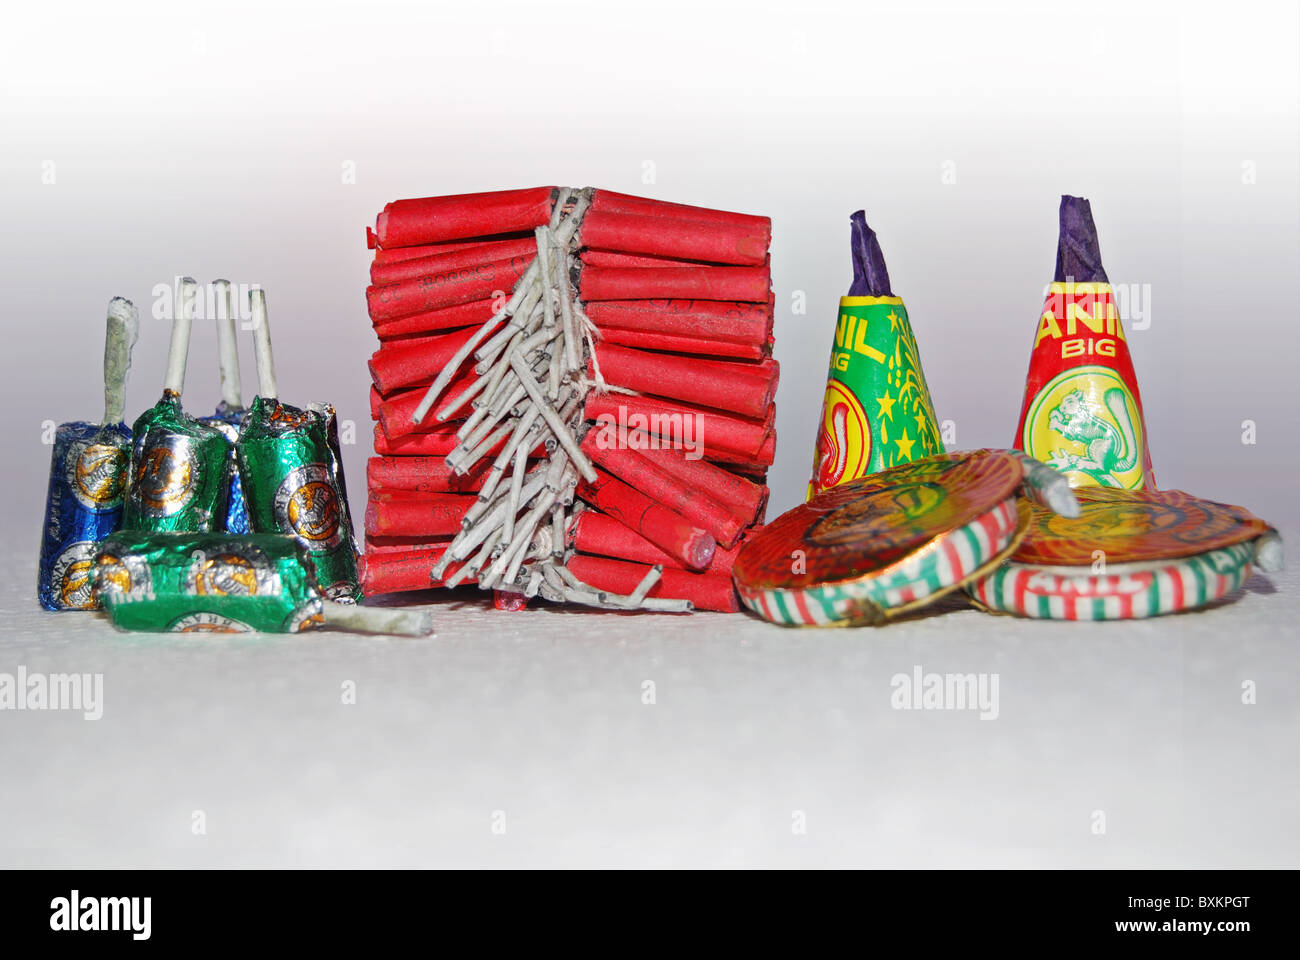 Variety of firecrackers- small bombs, flower pots, ground chakkars, red crackers. Firecrackers are essential part - Stock Image